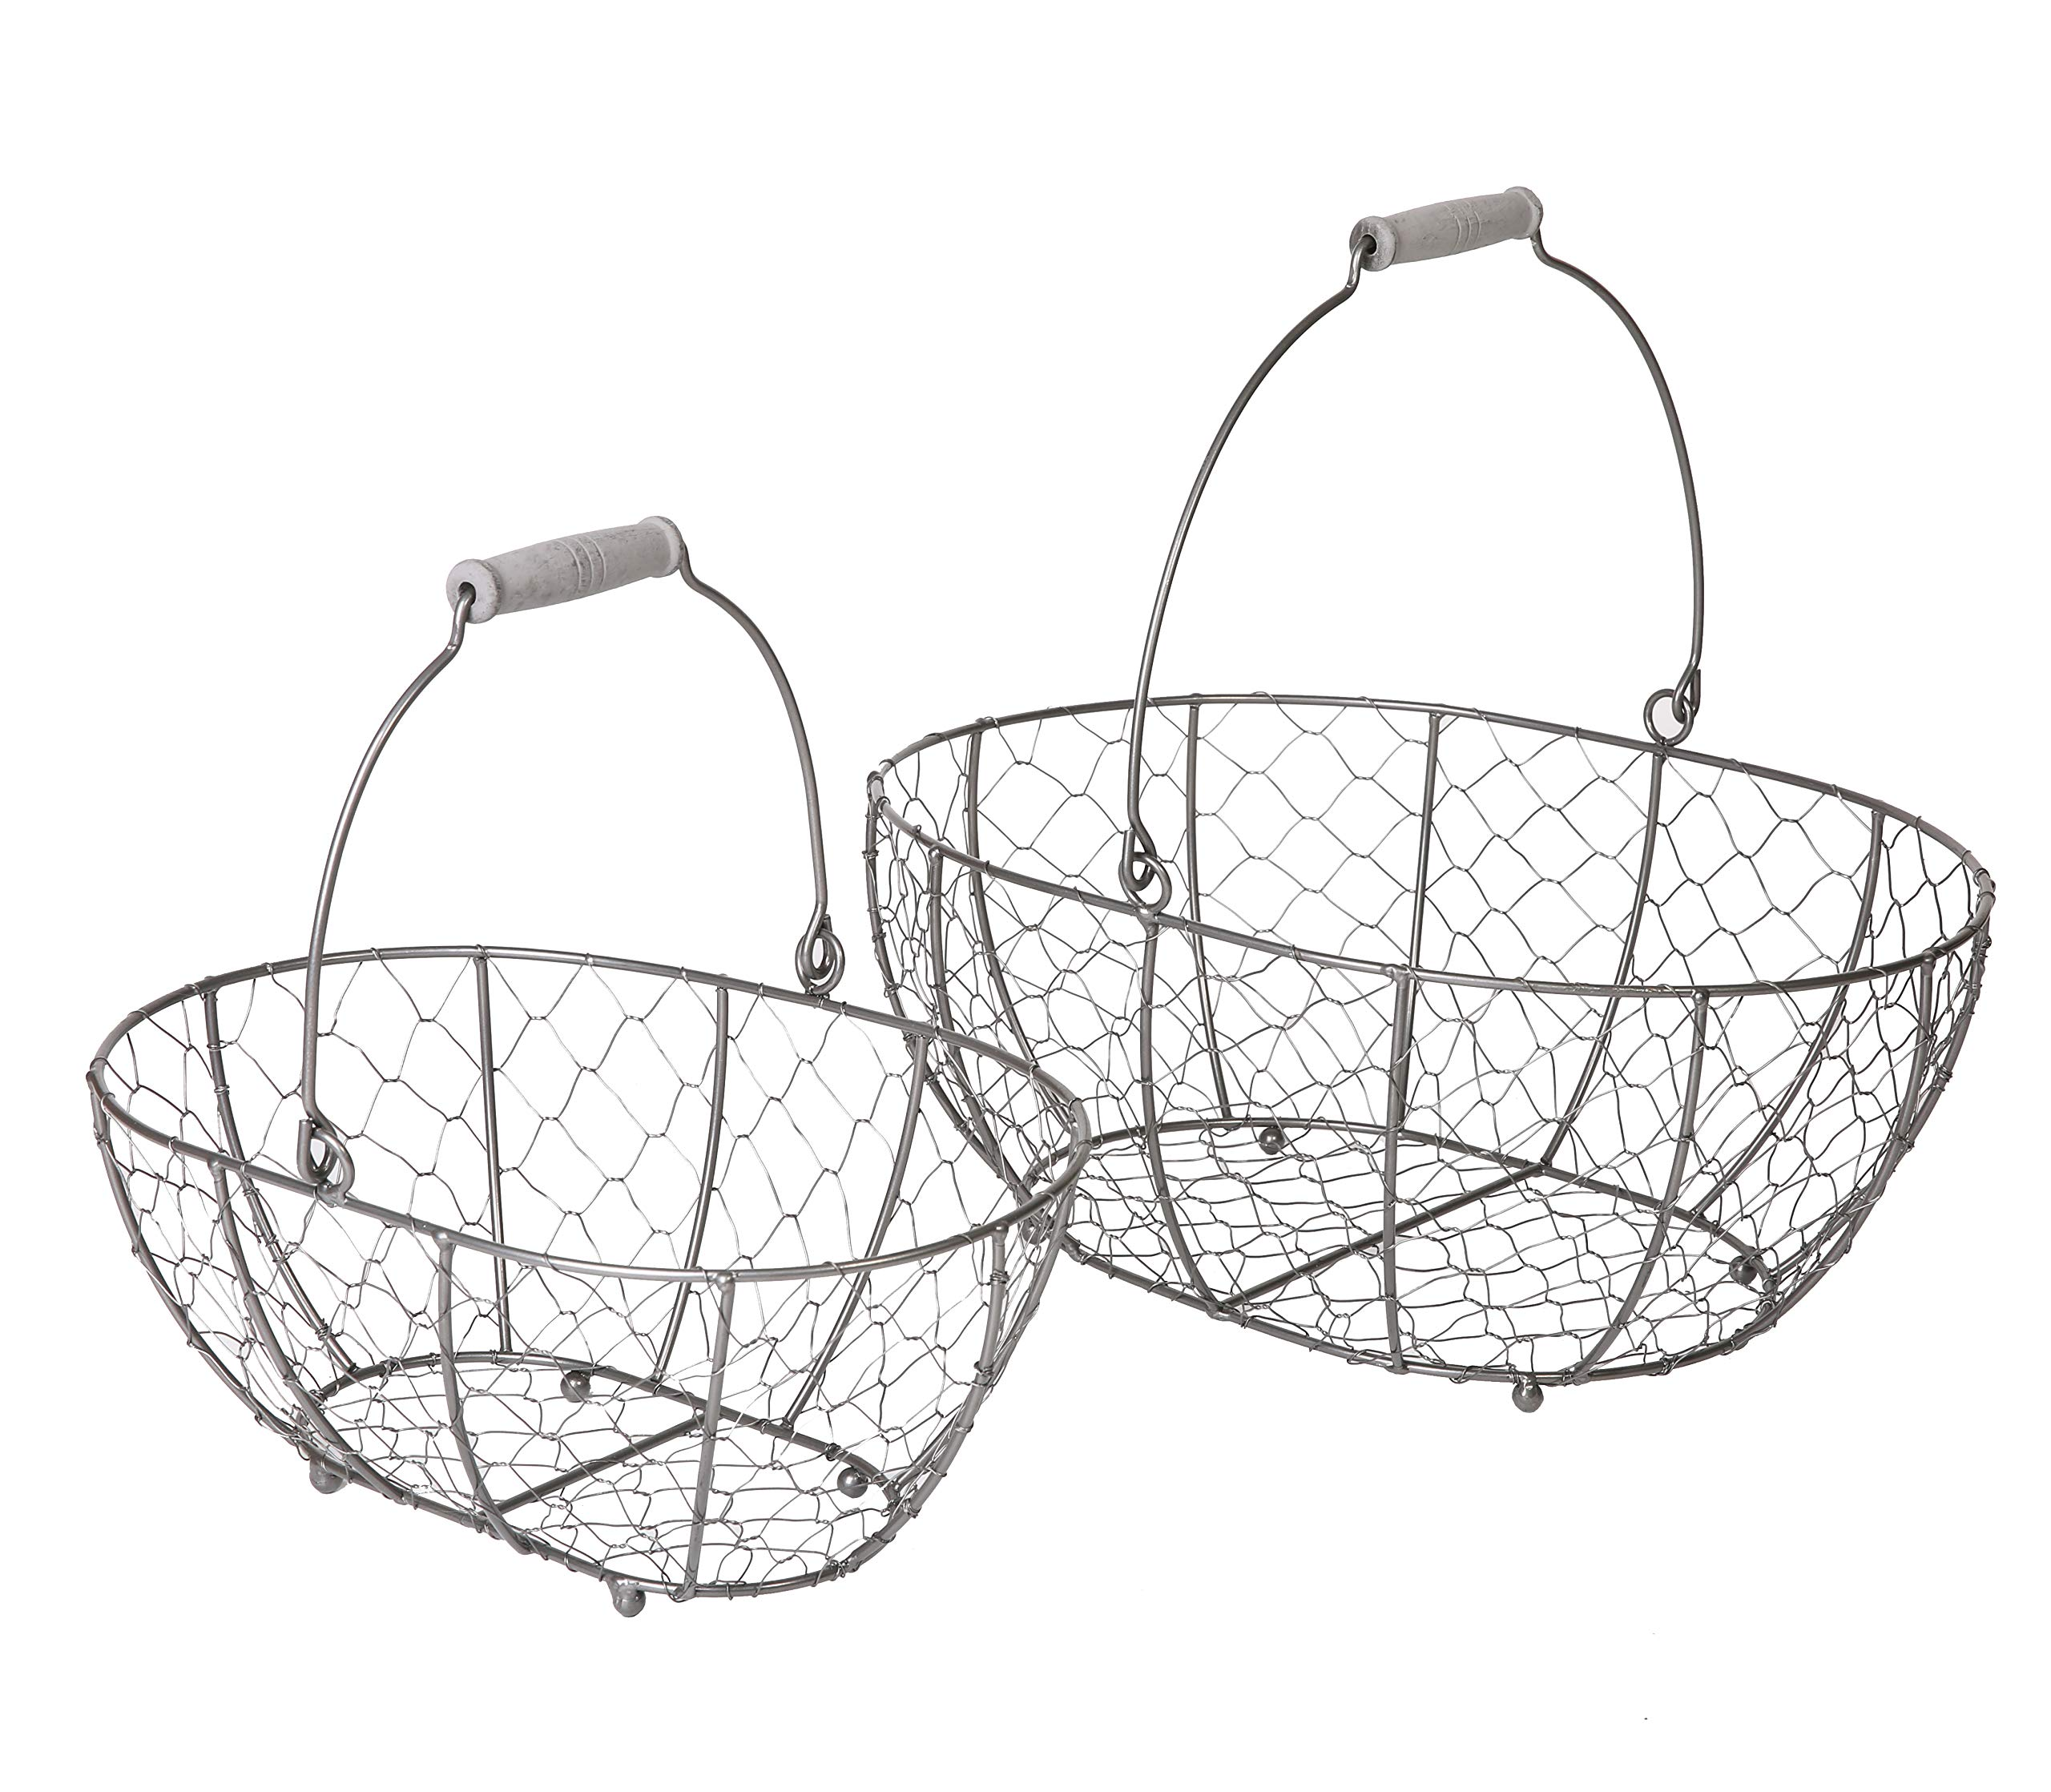 SLPR Grey Metal Round Wire Basket with Handle (set of 2) | Vintage Rustic Farmhouse Country Style Metal Chicken Wire Storage for Shelves Pantry Closet Home Decor